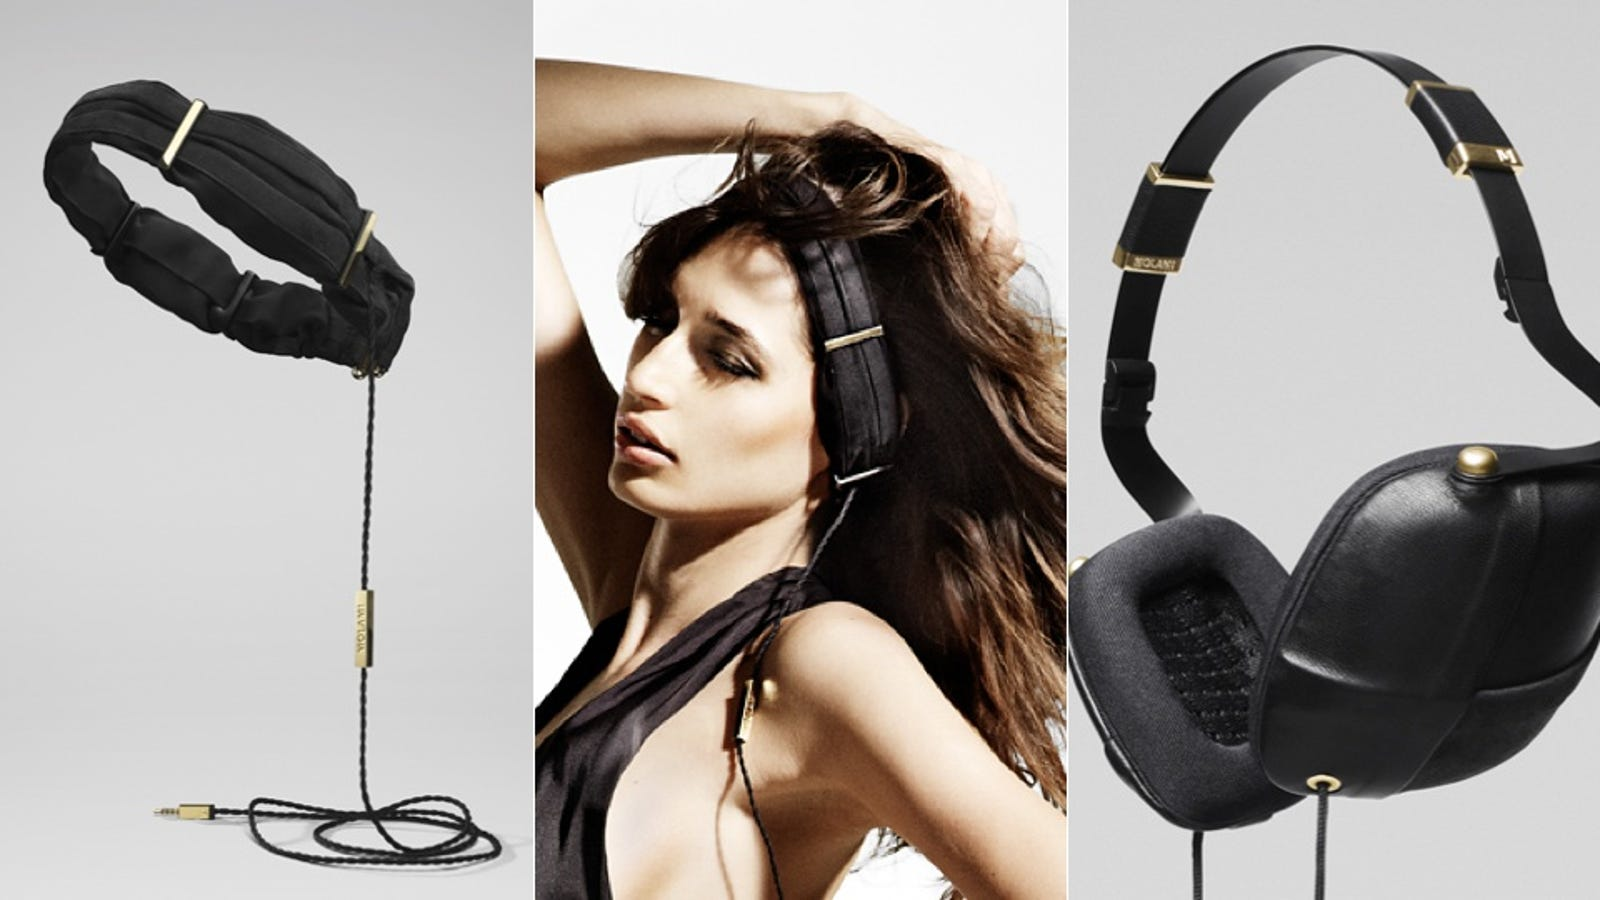 panasonic earbuds mix - This Is What Stylish Headphones for Ladies Look Like (Hint: They're Not Pink)